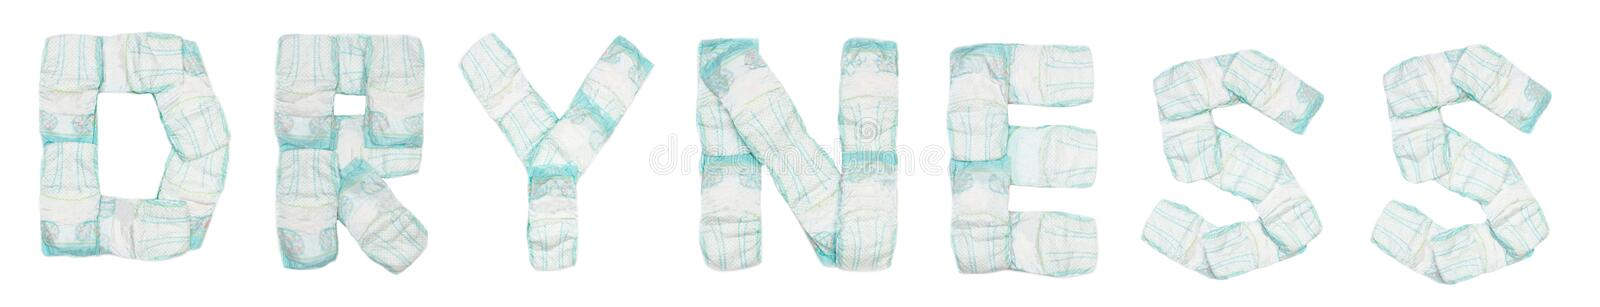 Word dryness laid out baby diapers on a white background, isolate, napkin, inscription. Napkin stock photos